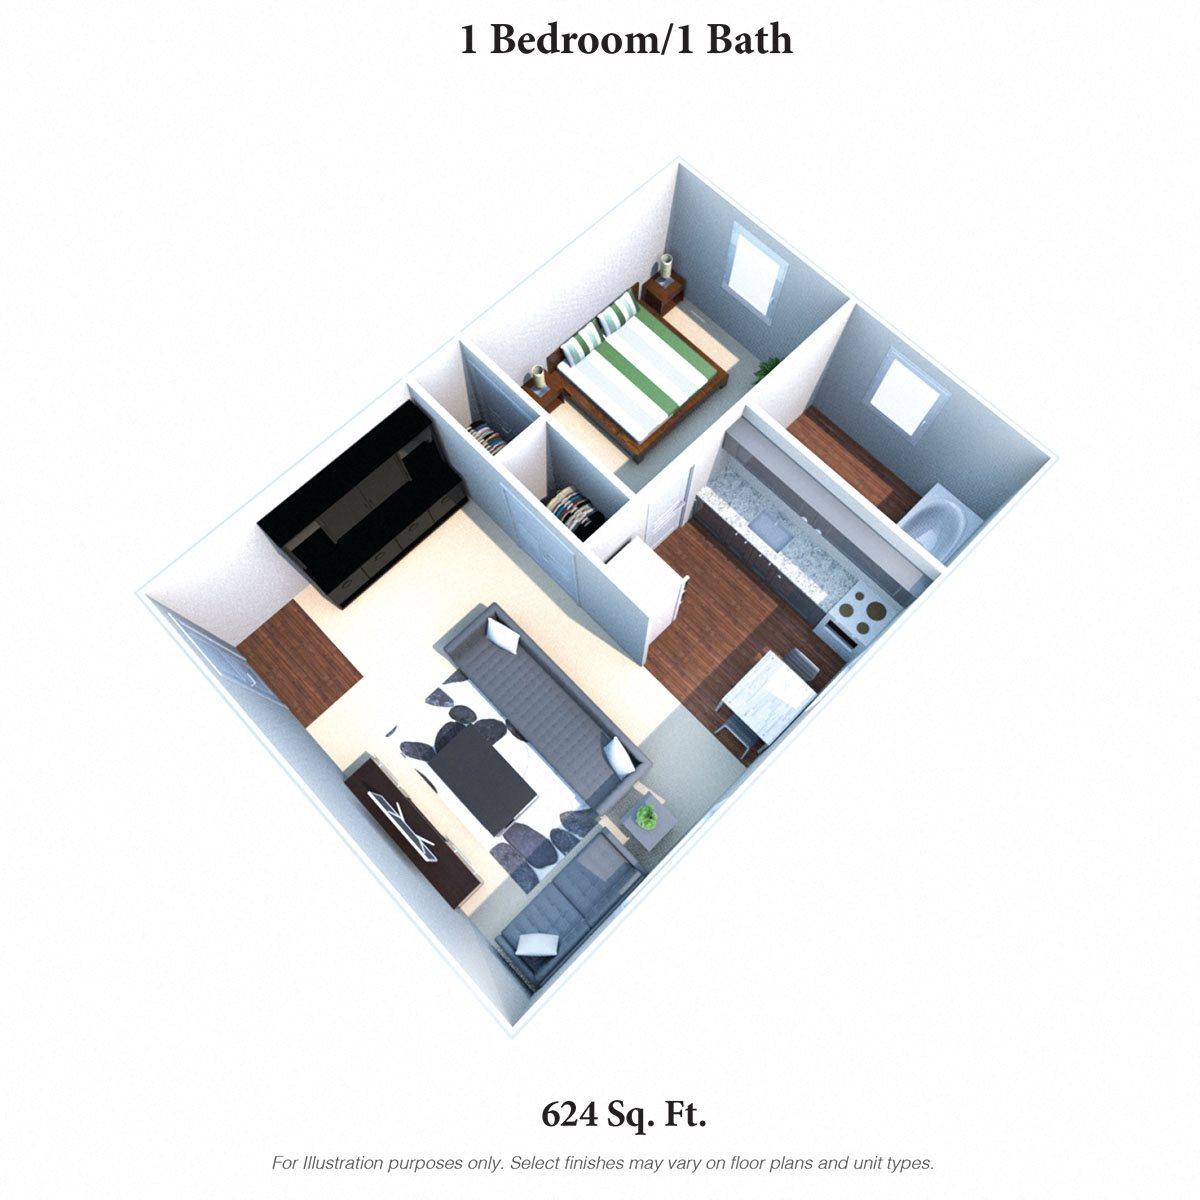 1 Bedroom 1 Bath Floor Plan 2